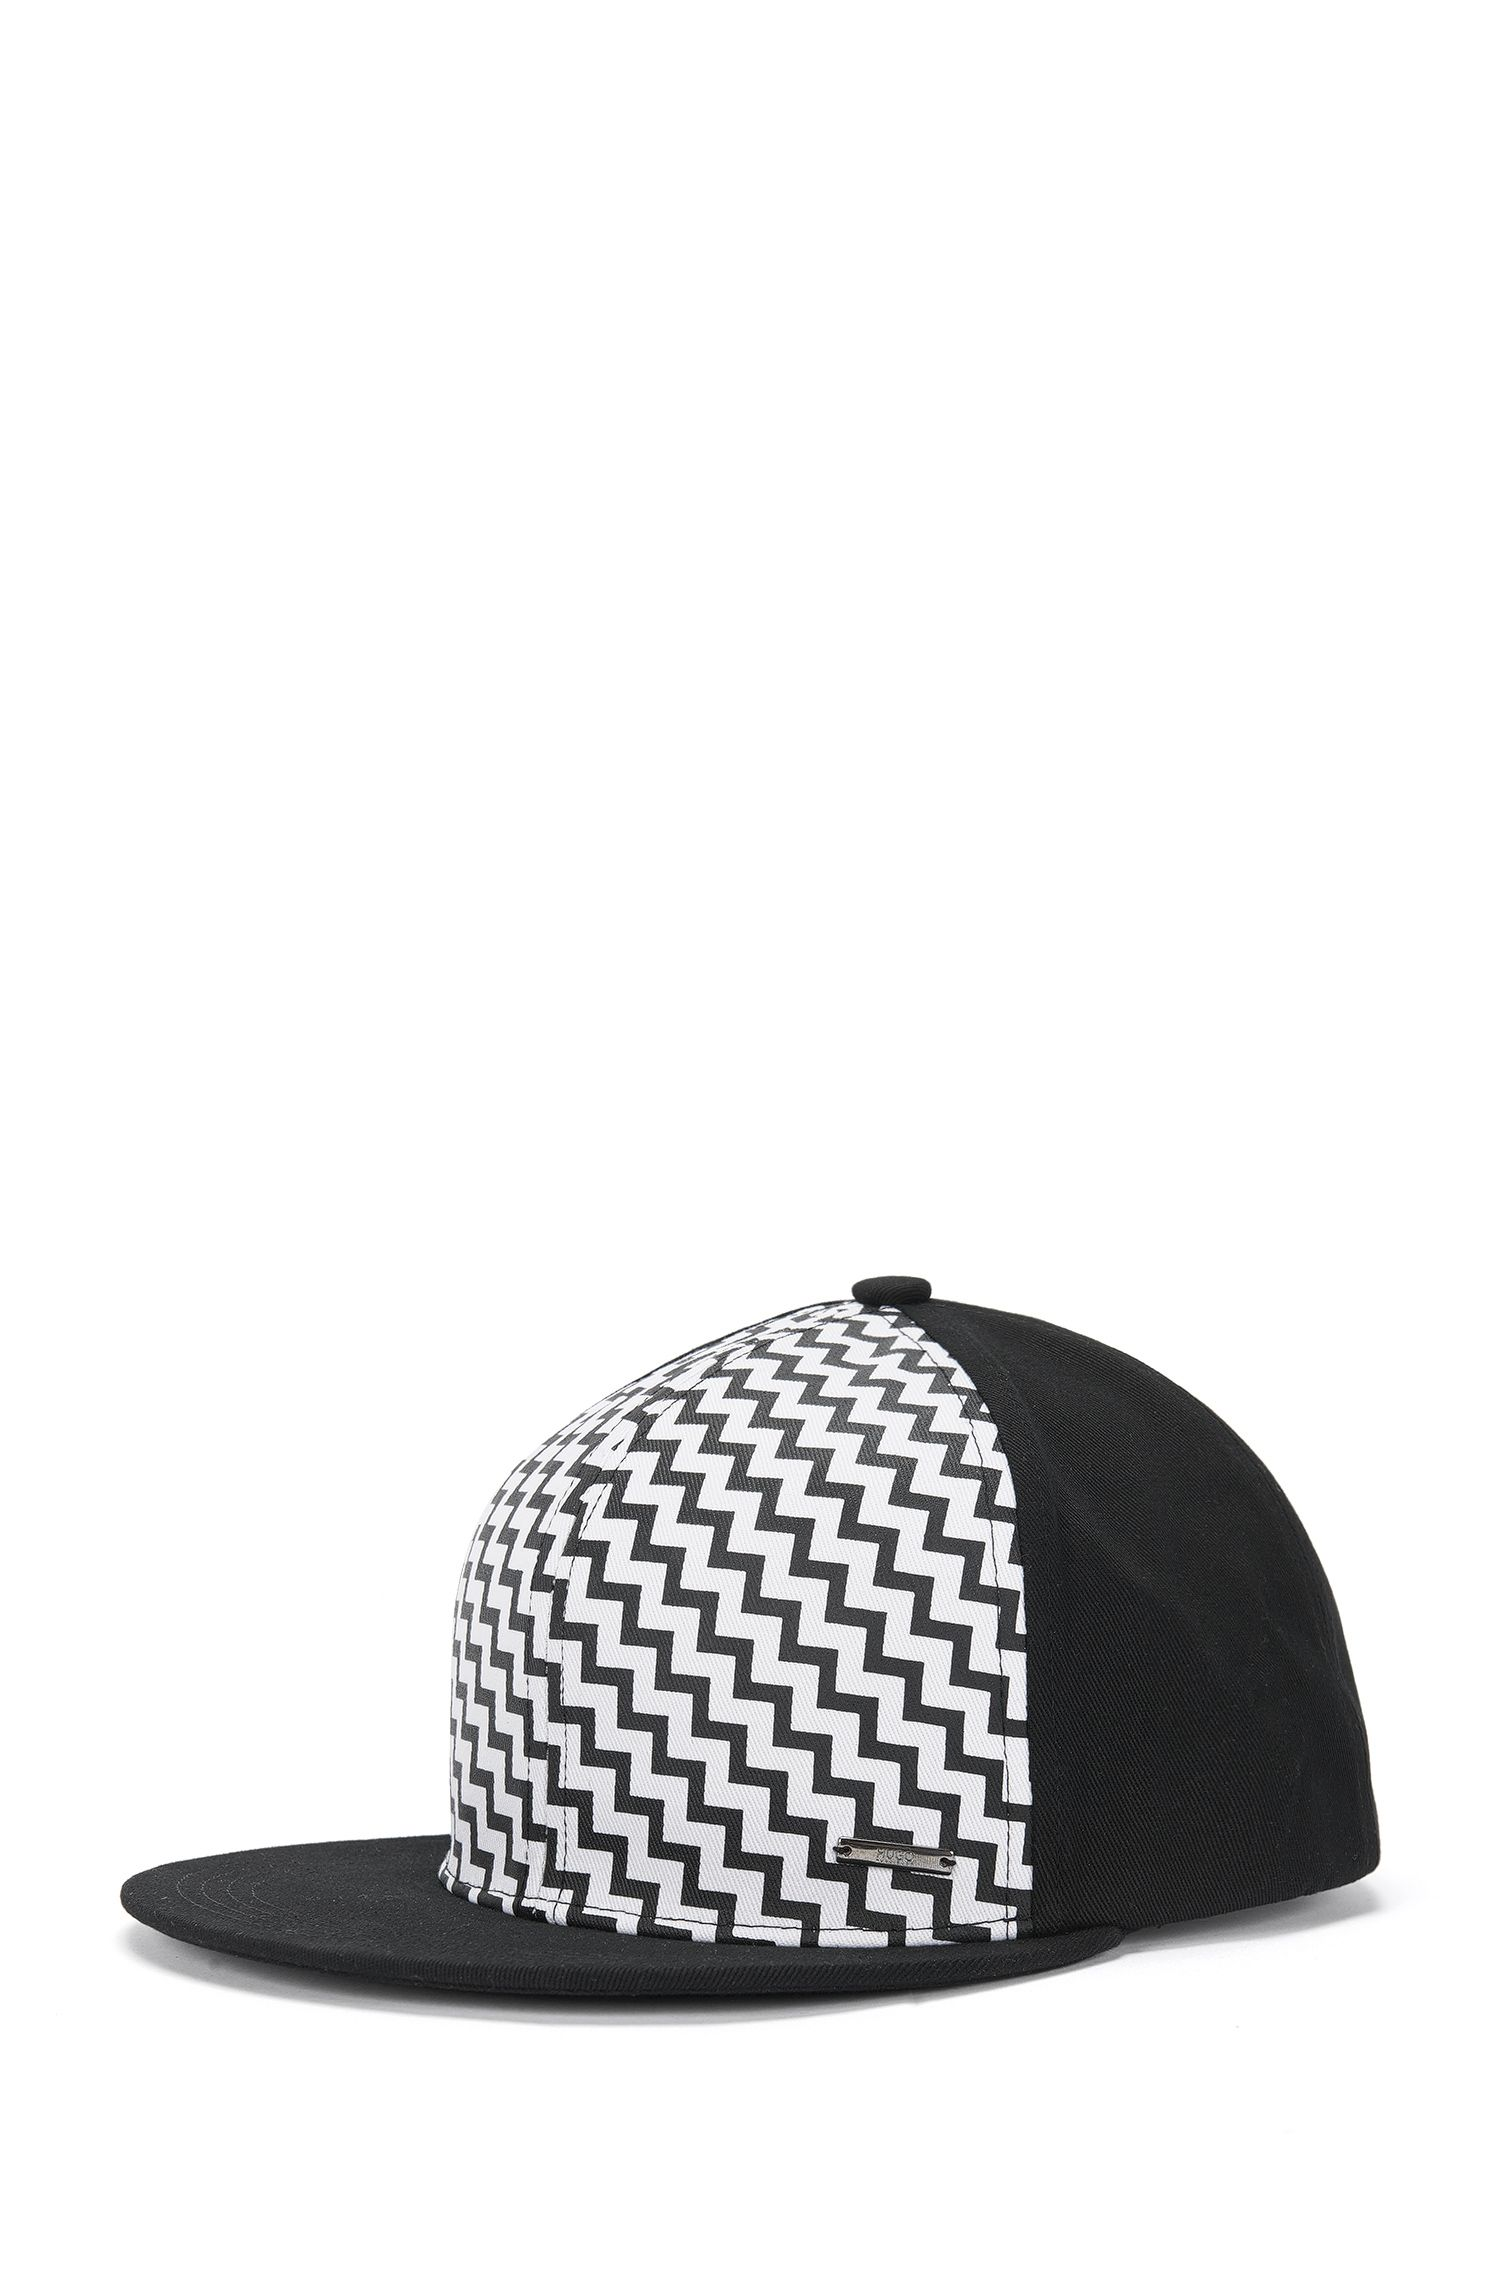 Cotton cap with printed front: 'Men-x 533'